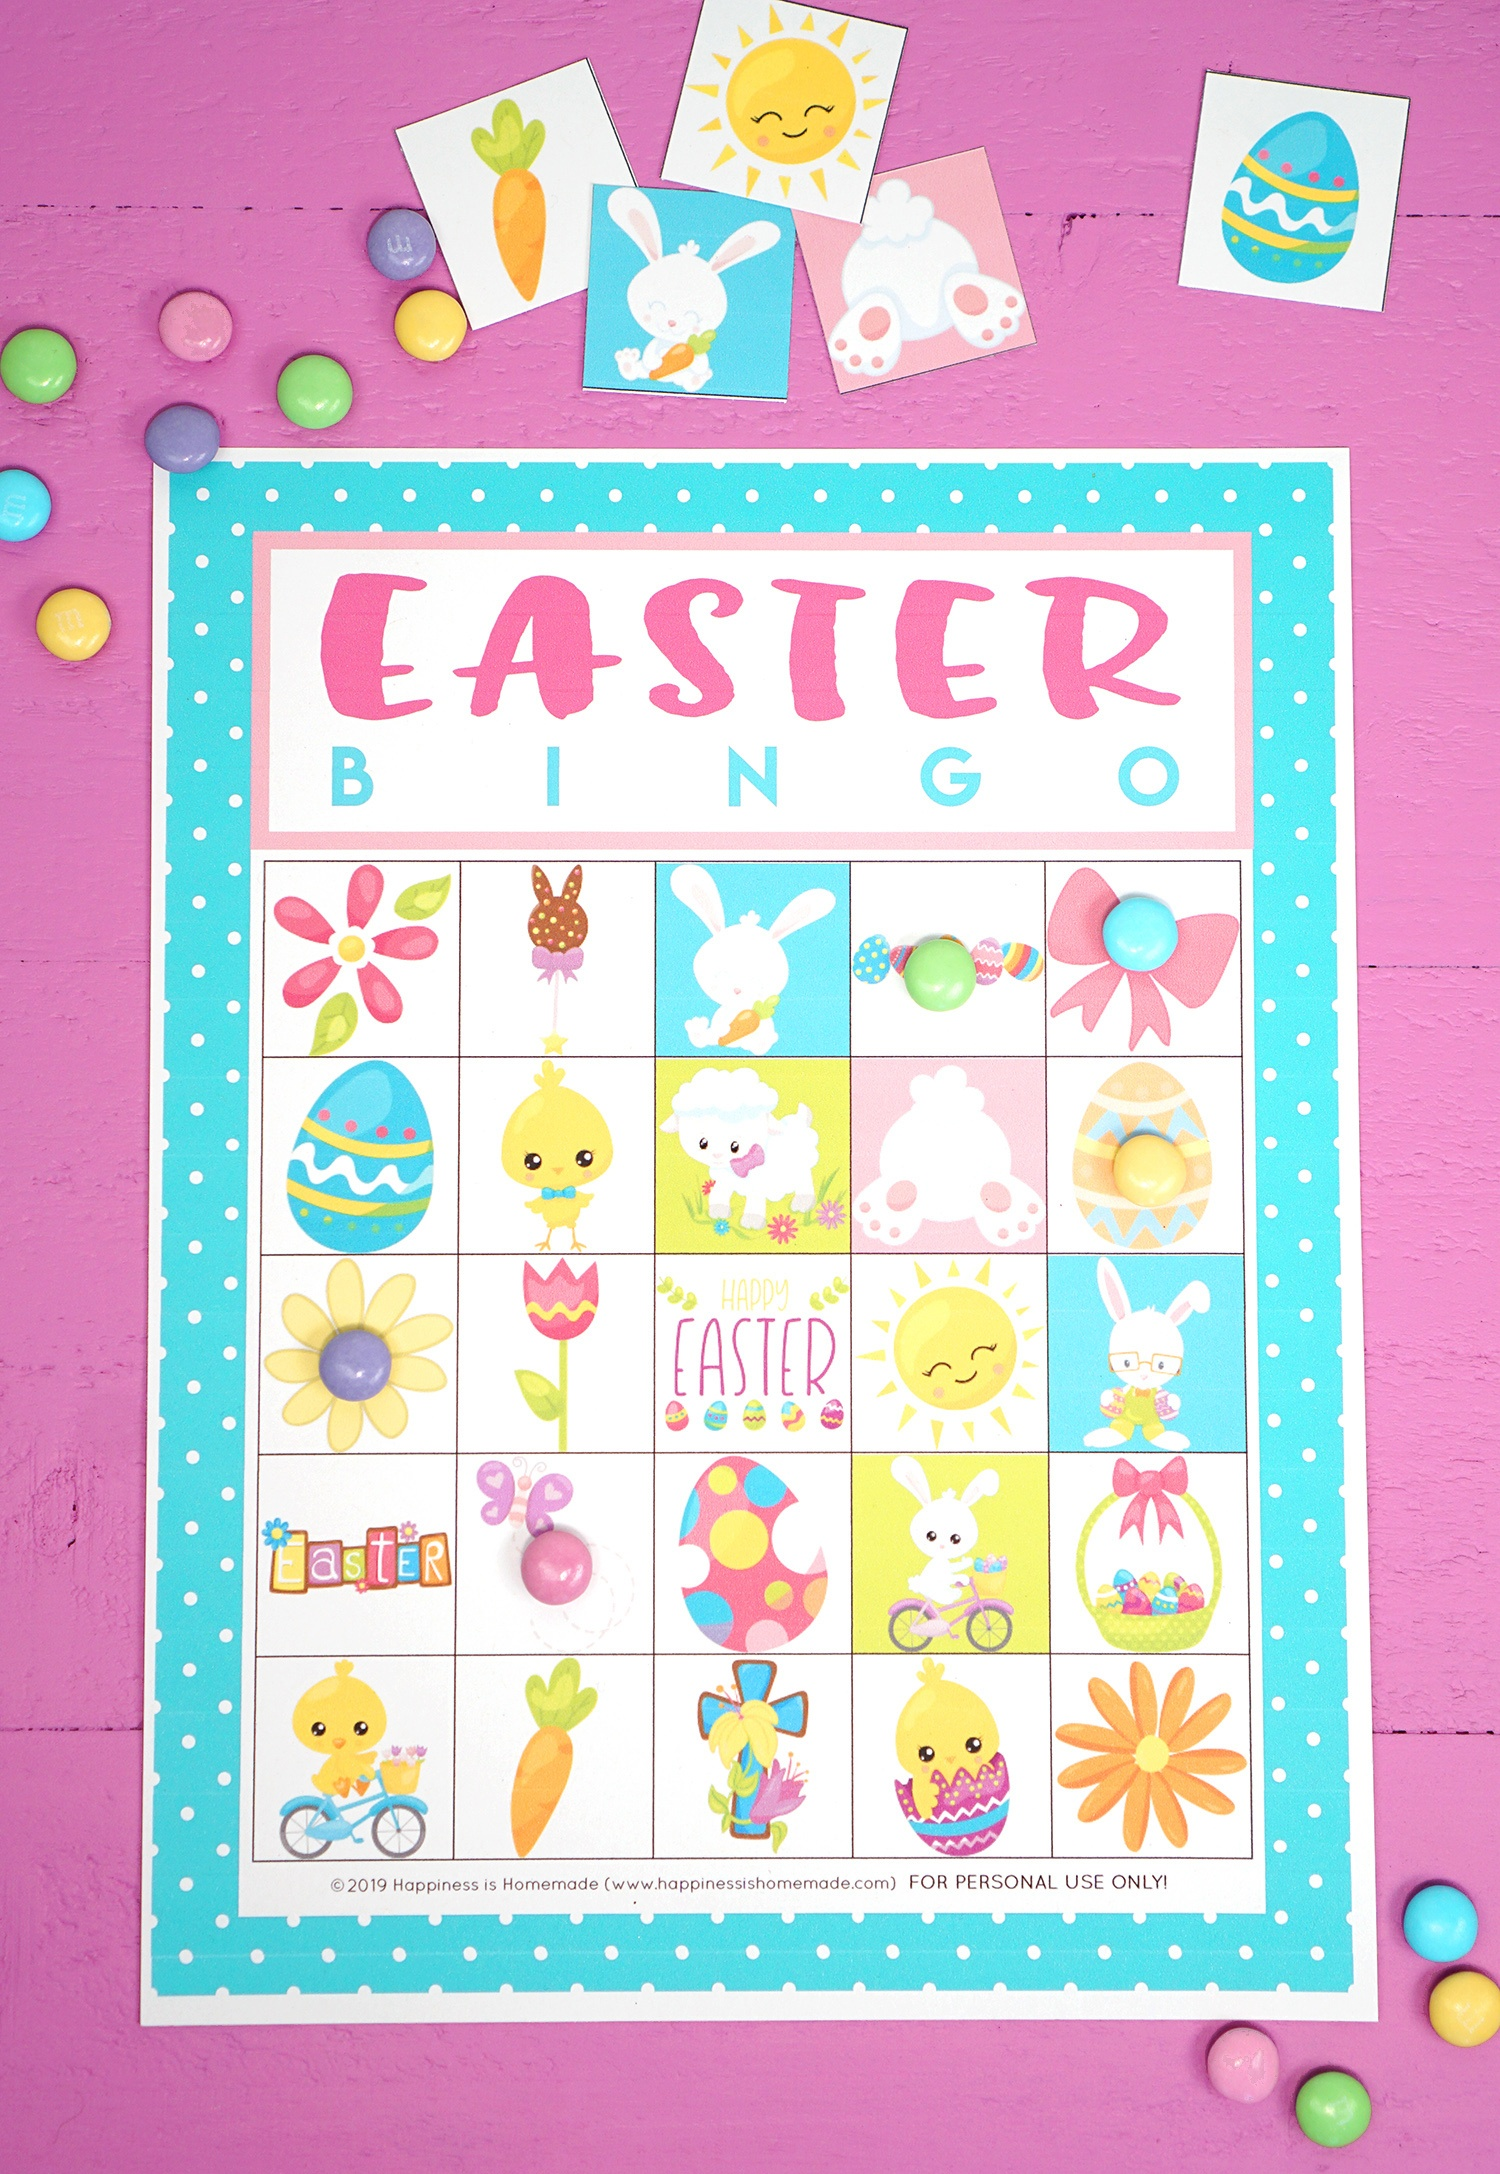 Free Printable Easter Bingo Game Cards - Happiness Is Homemade - Free Printable Easter Cards